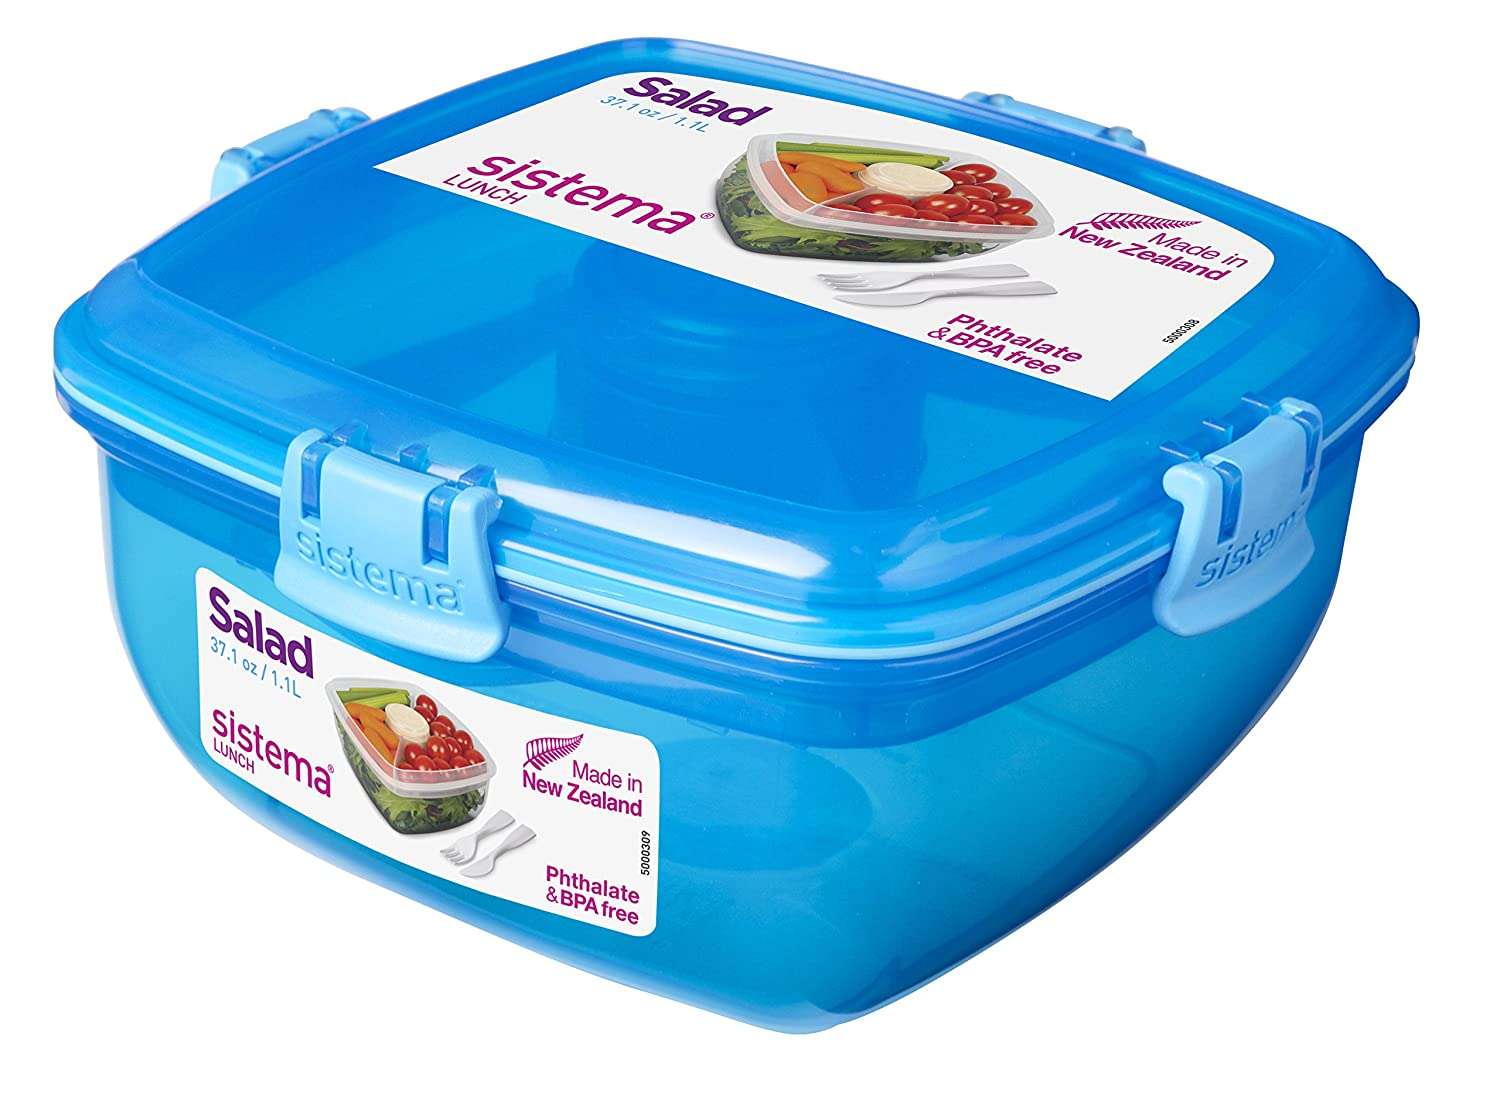 Sistema Lunch Salad to Go Container, 37.1 oz, Green - Food Solutions for Busy Lifestyles